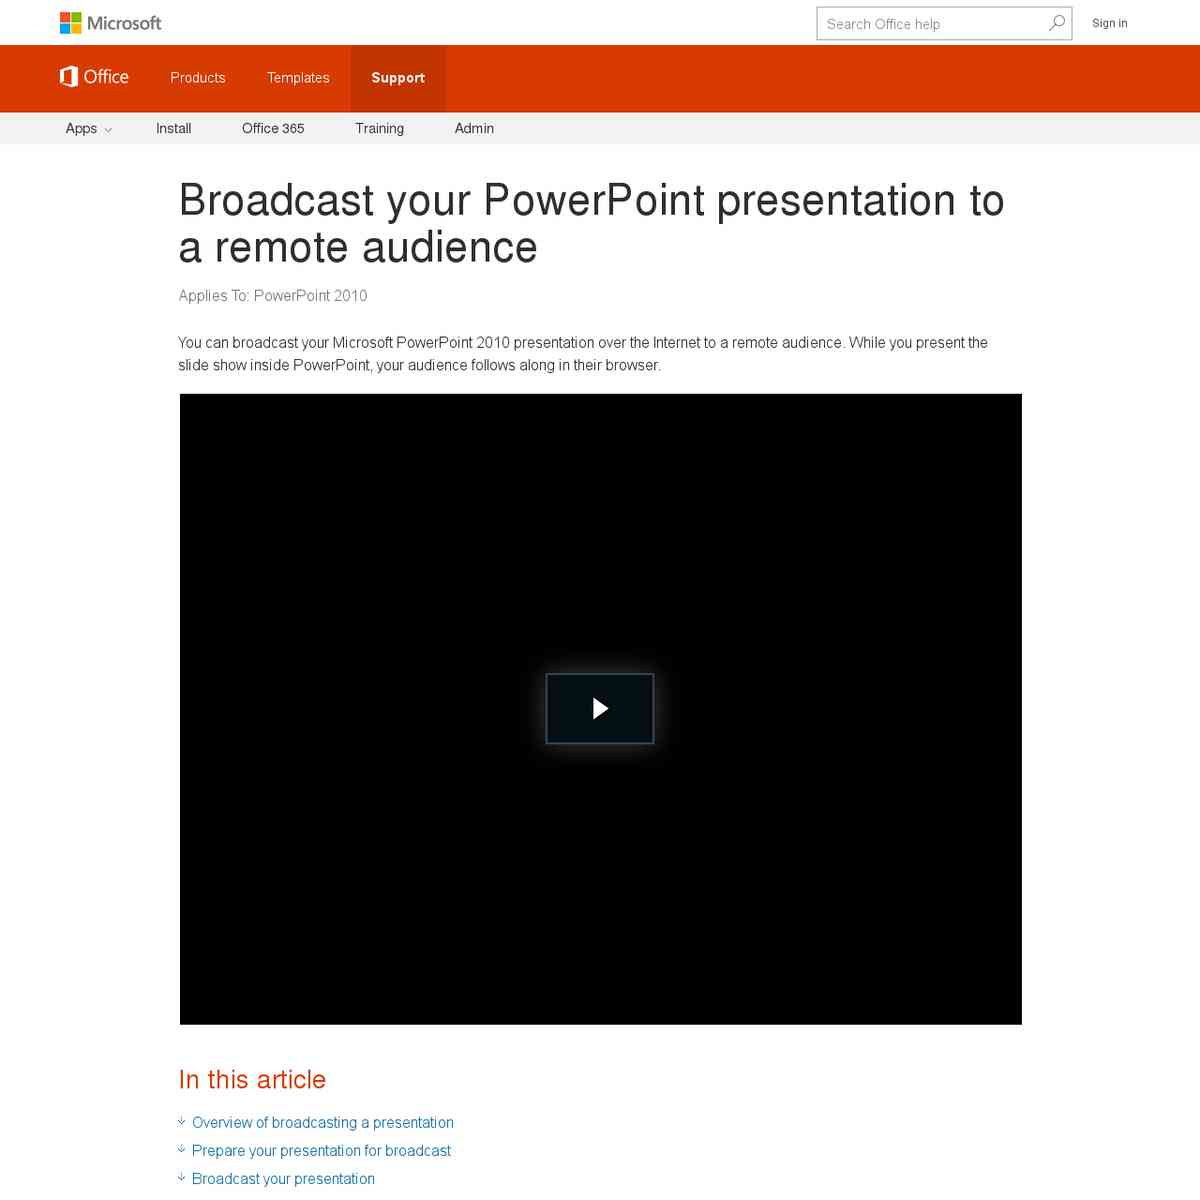 Broadcast your Powerpoint